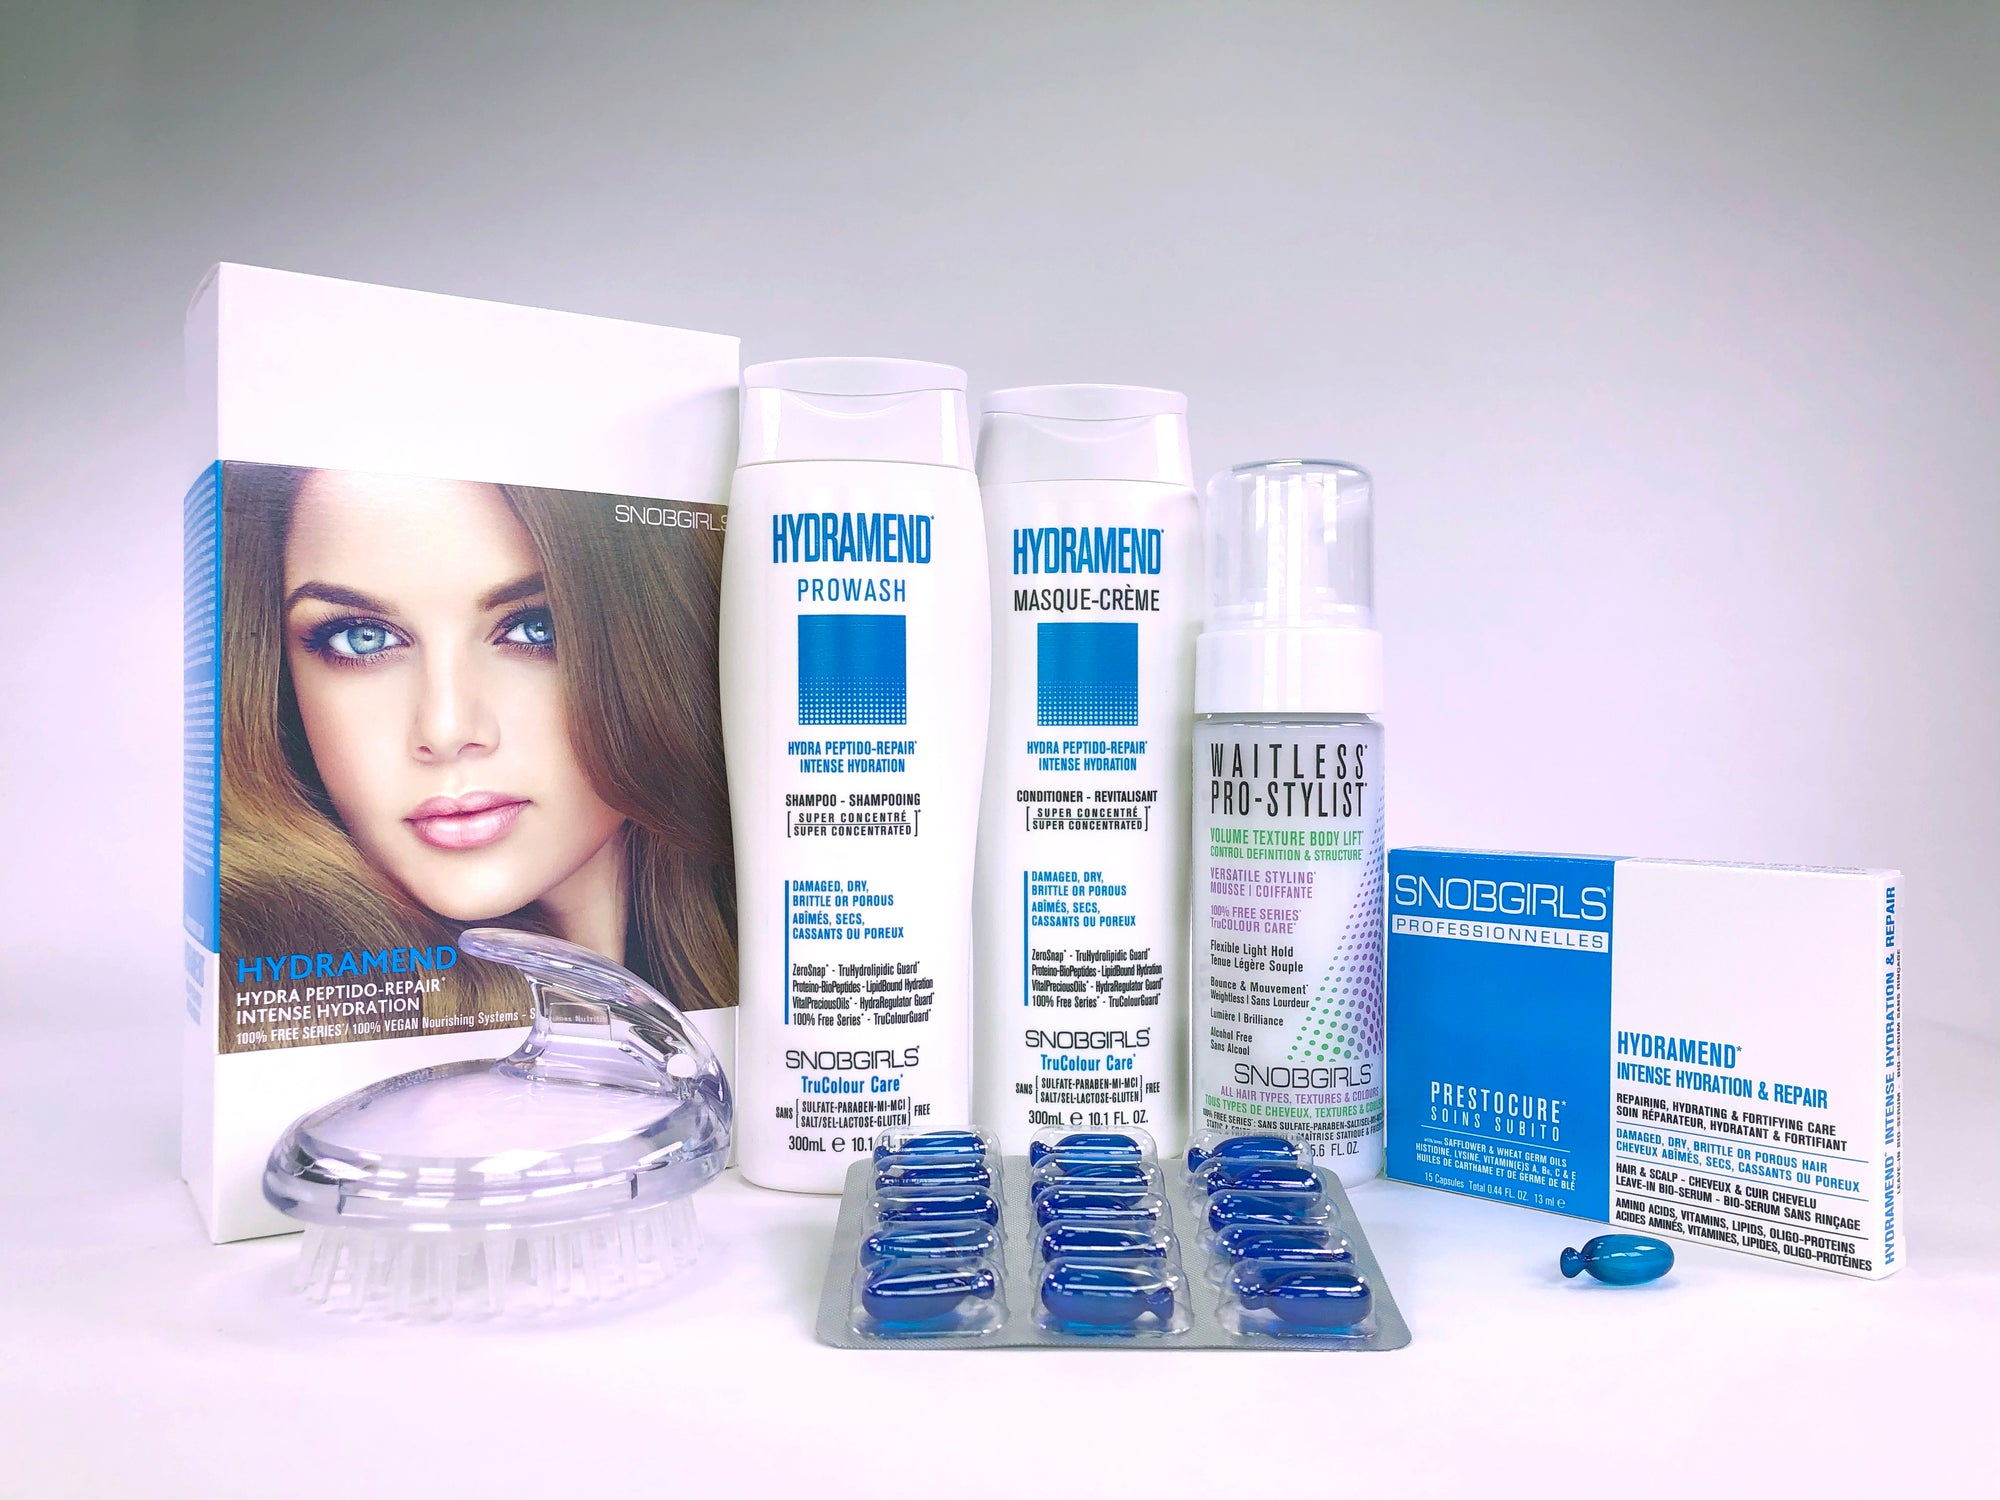 HYDRAMEND BOX HYDRA PEPTIDO-REPAIR  INTENSE HYDRATION Bundle - SNOBGIRLS Canada